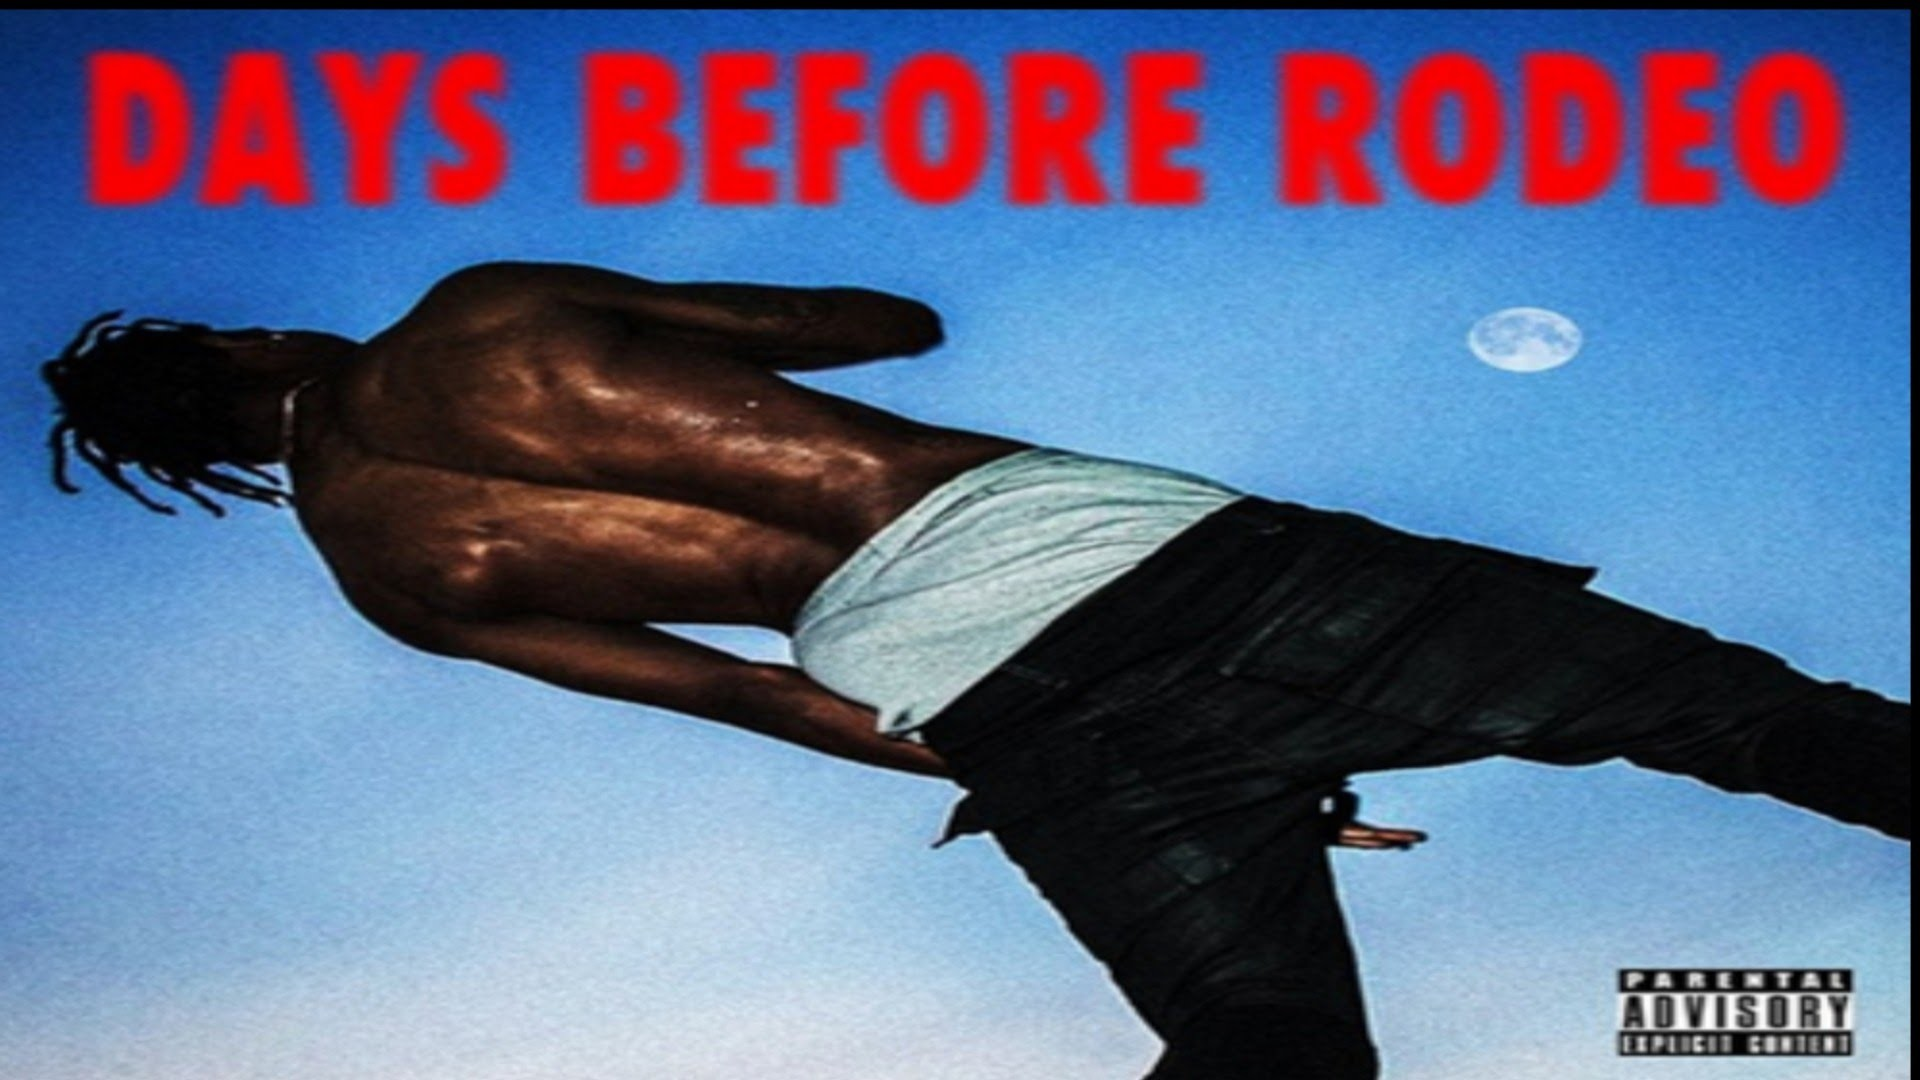 Travis Scott Rodeo Wallpaper 65 Images